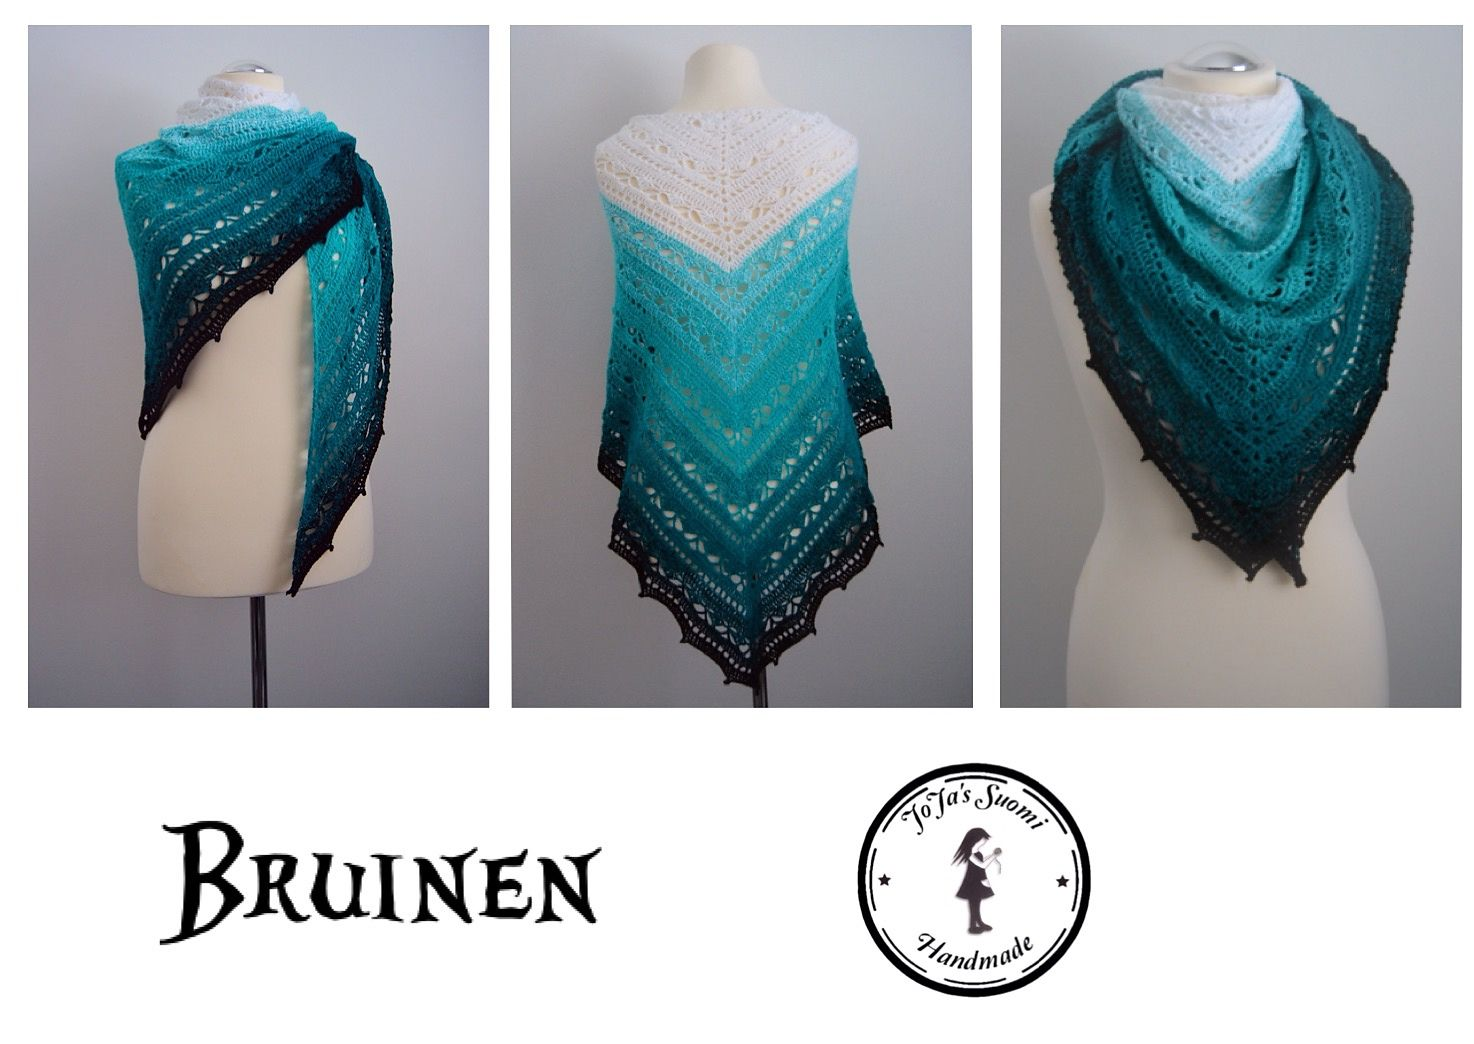 Ravelry Bruinen By Jasmin Rsnen Craft Pinterest All Shawl Stitch Diagrams Doris Chan Crochet Free Triangular Pattern With Charts In English And German